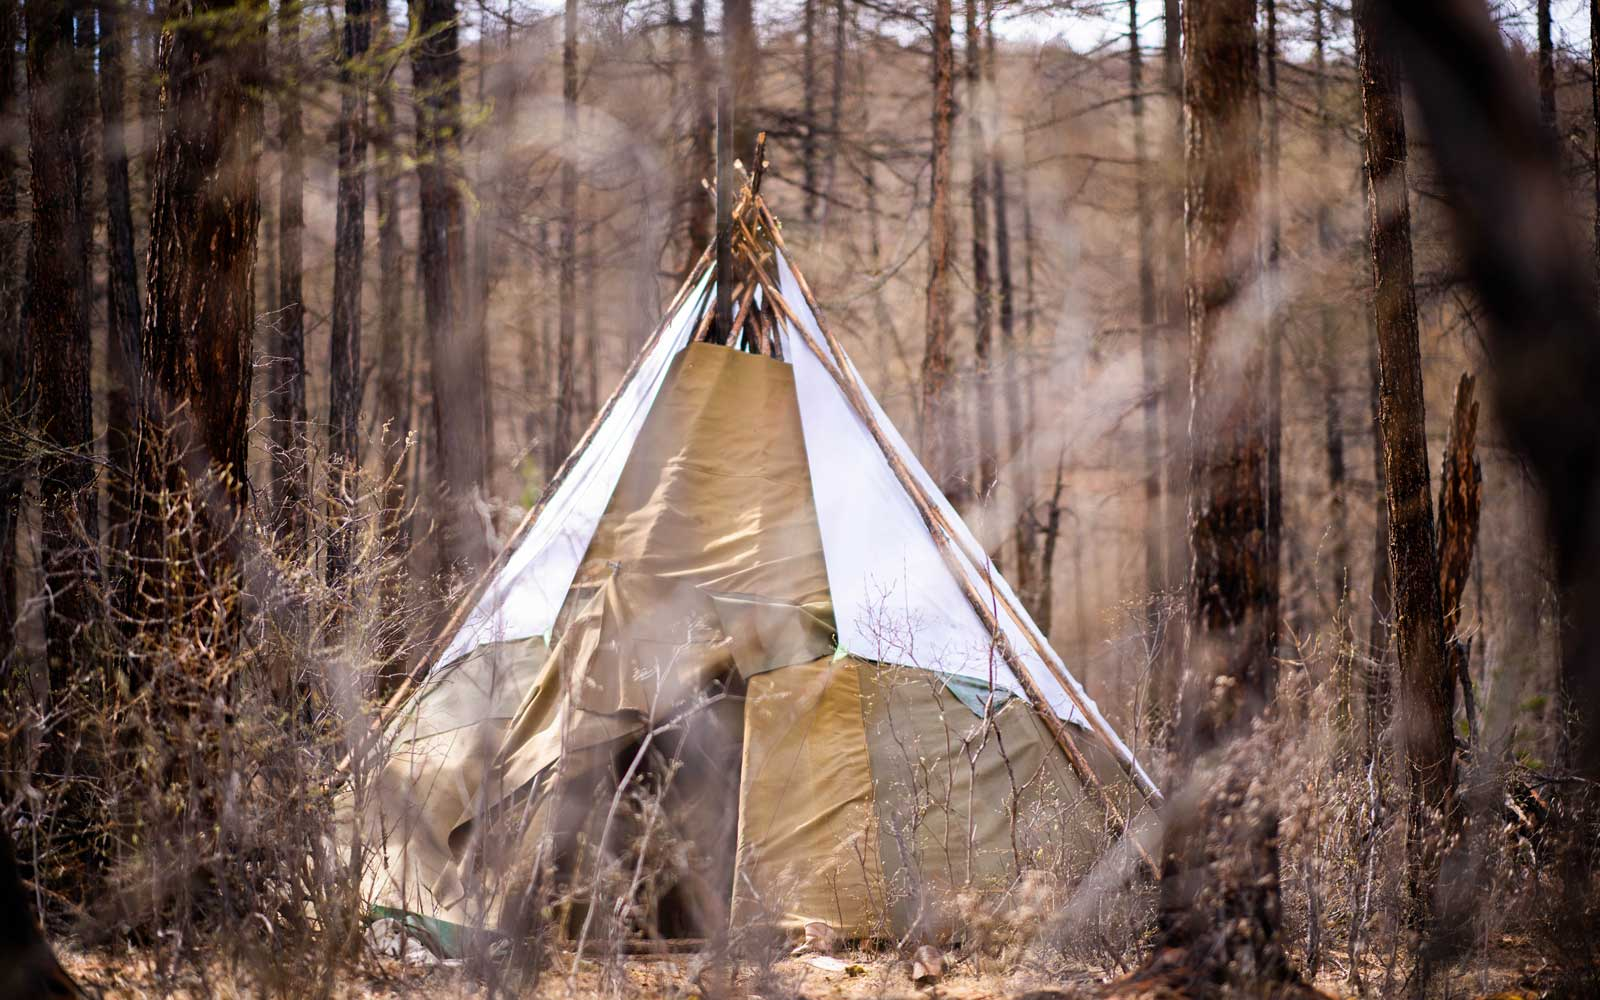 The stay is in a traditional teepee.